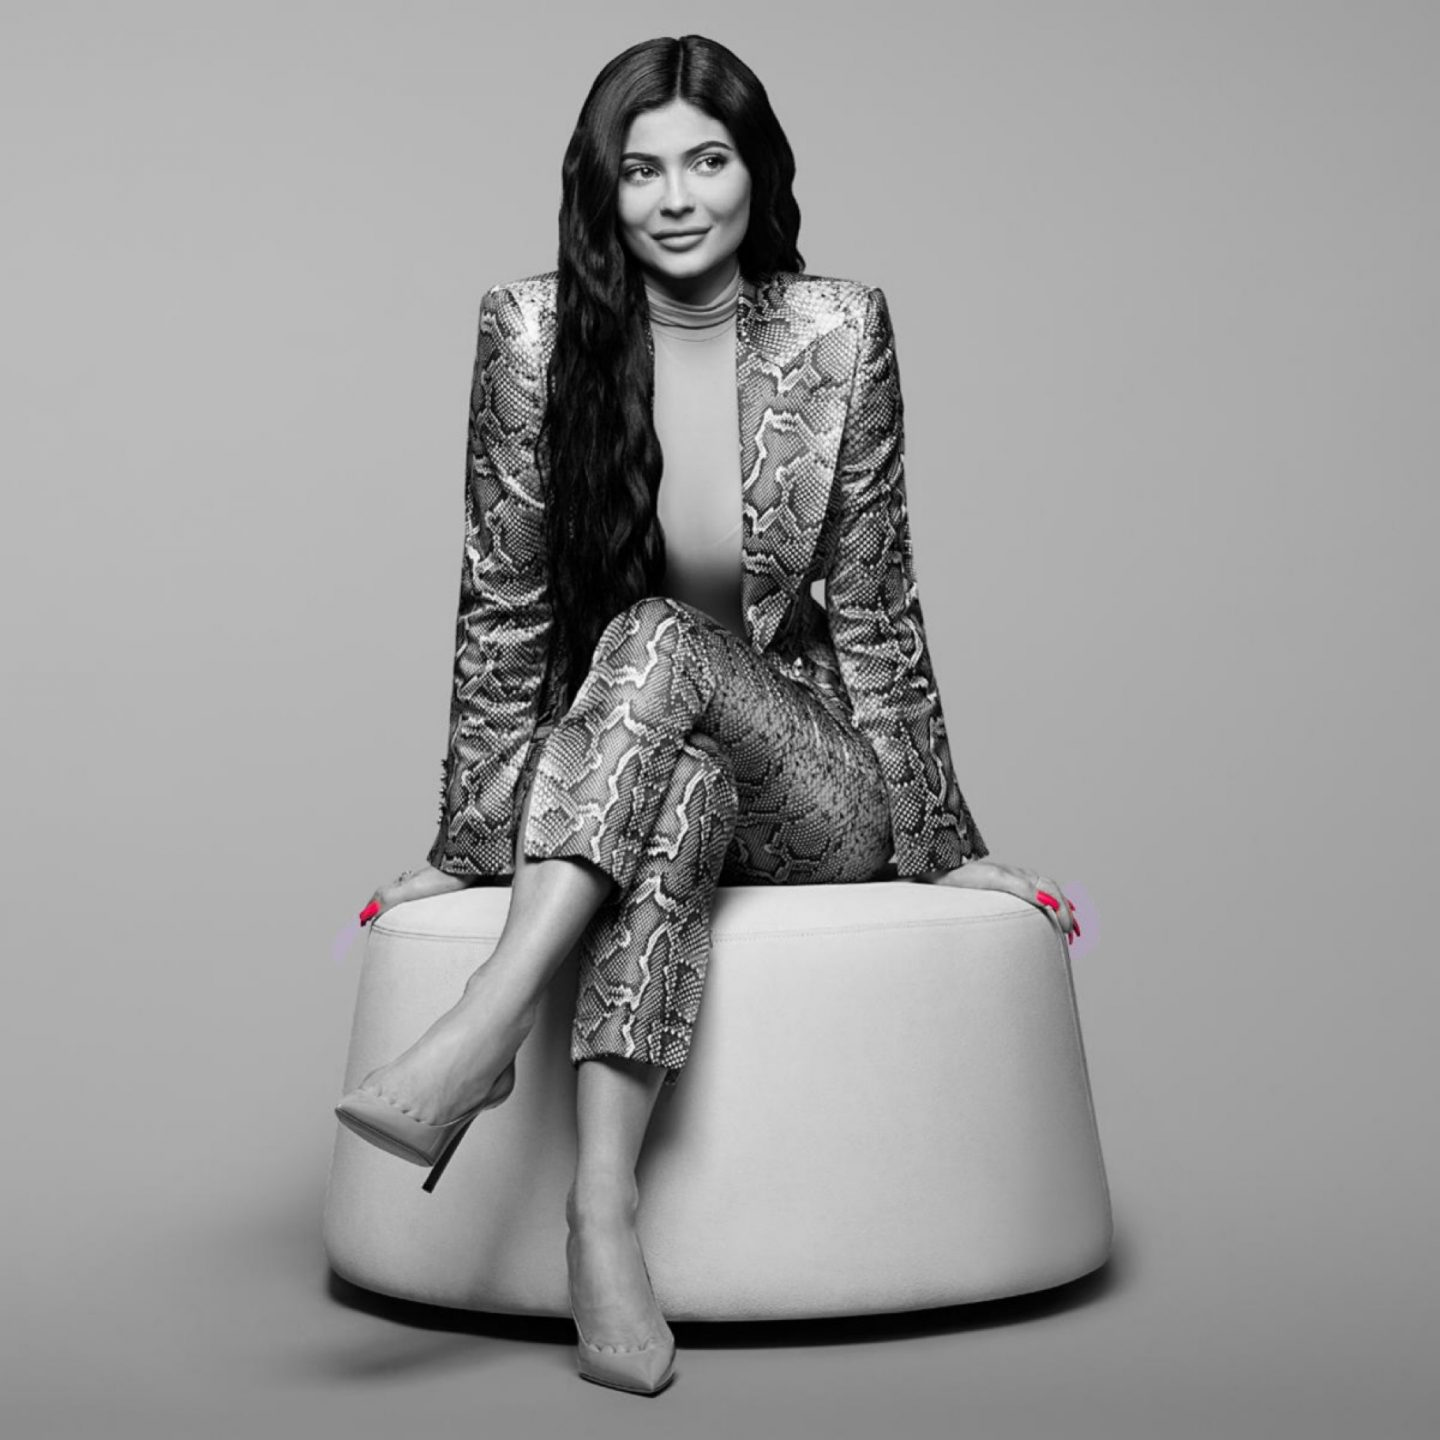 Kylie Jenner Becomes The Youngest Self-Made Billionaire Ever